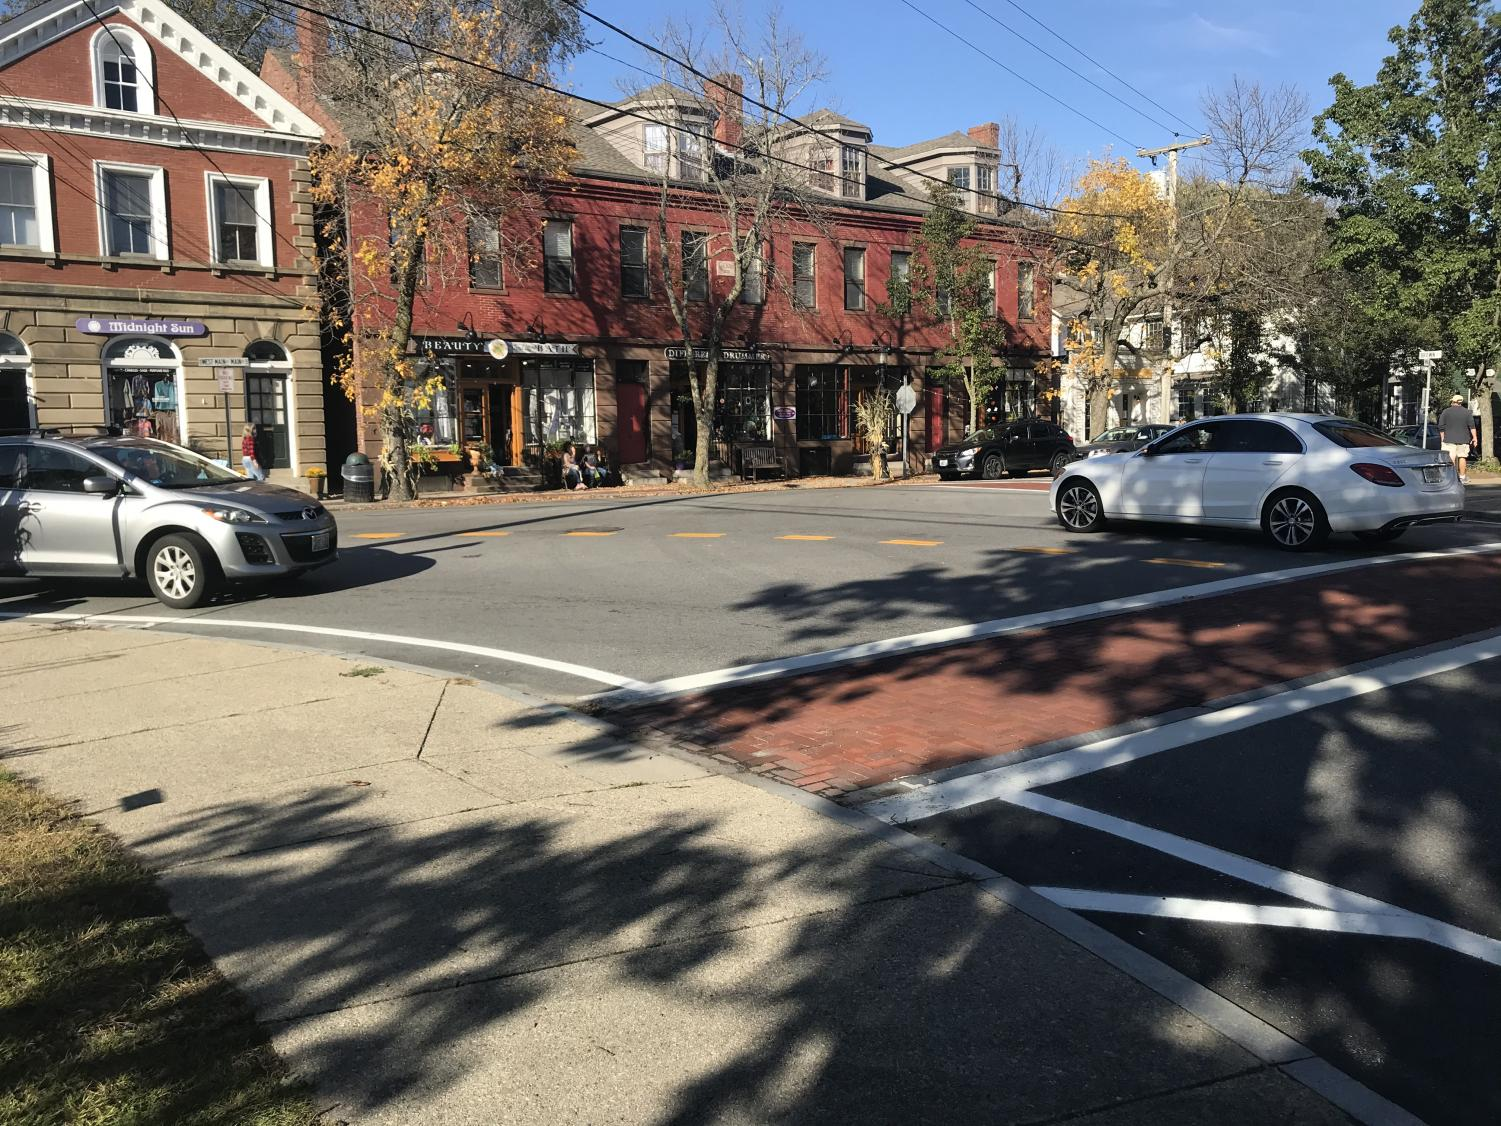 Wickford Village: Hip or Historical?